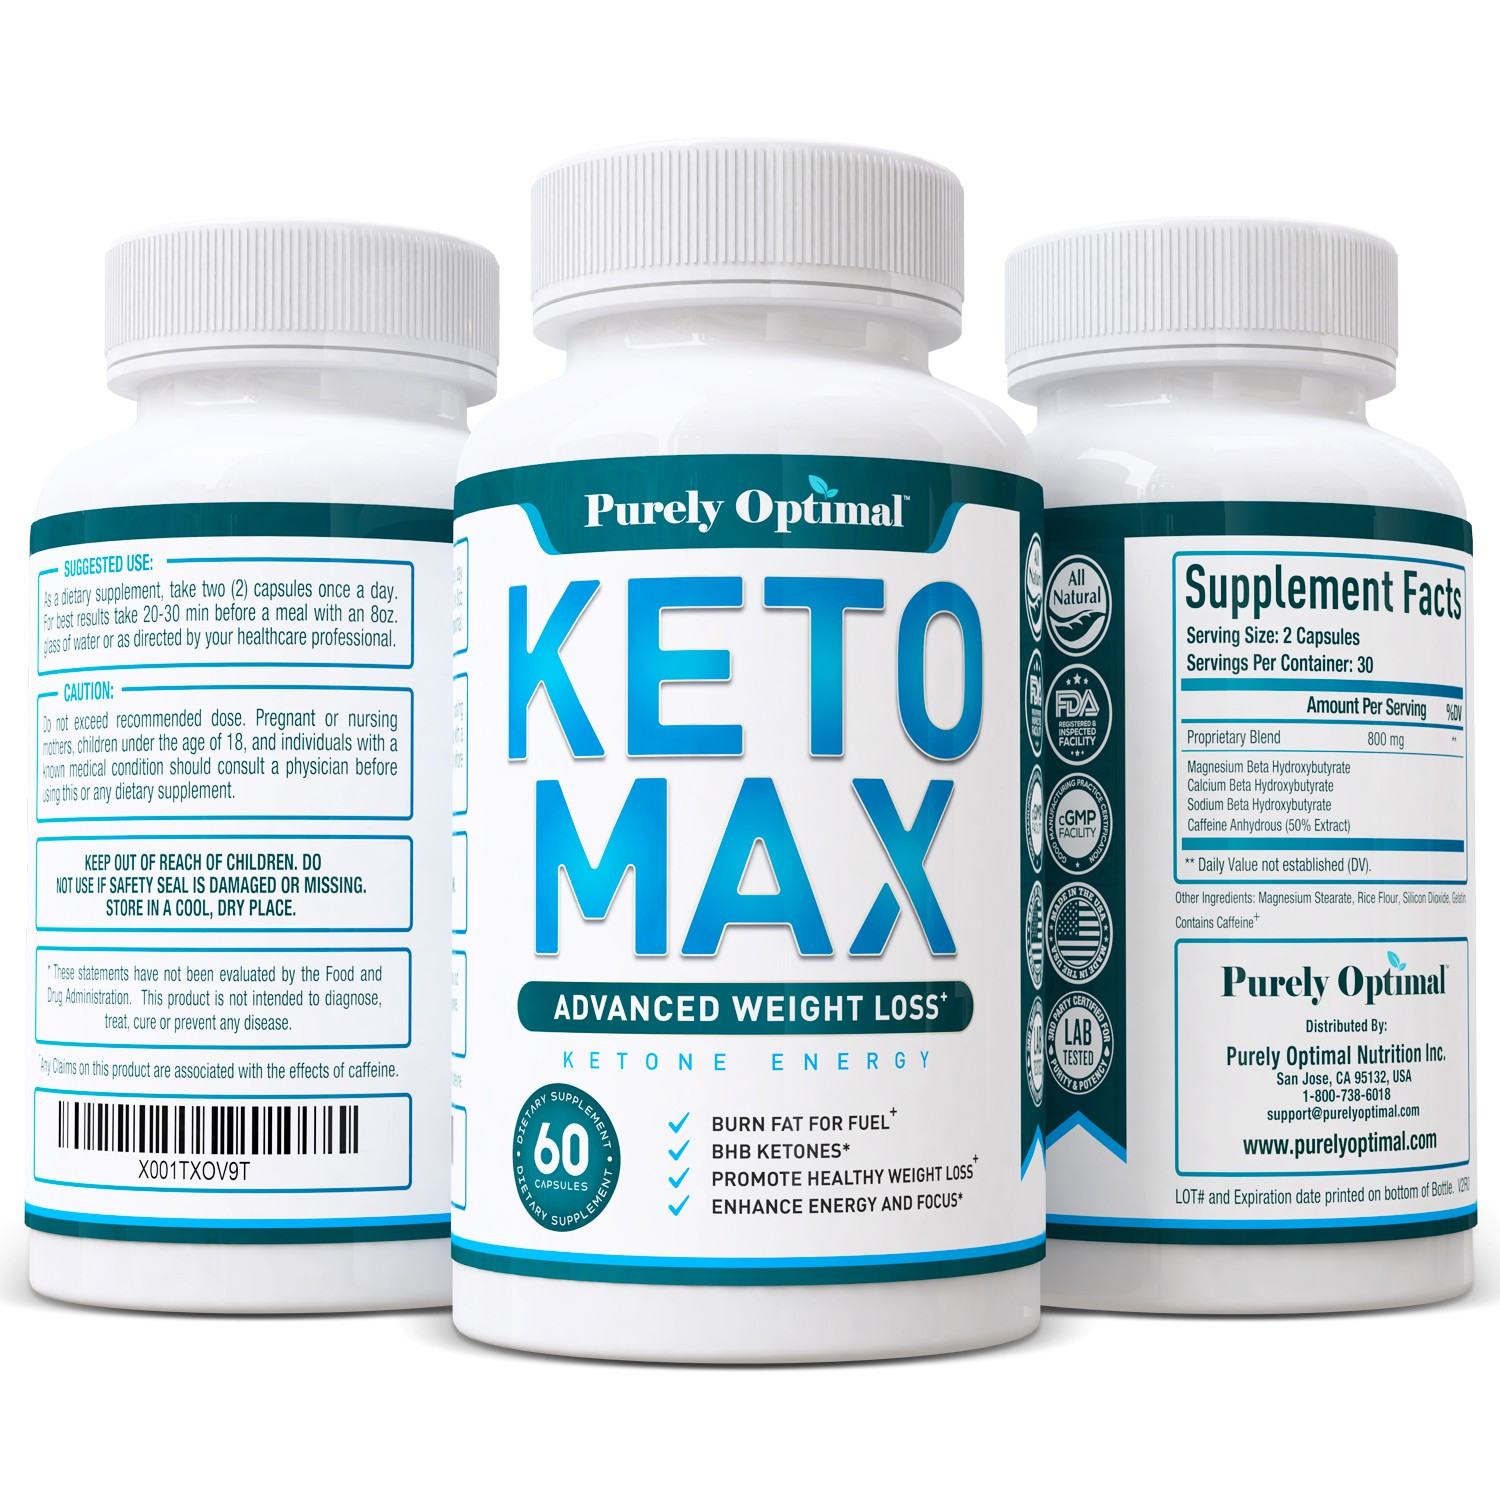 Keto Images